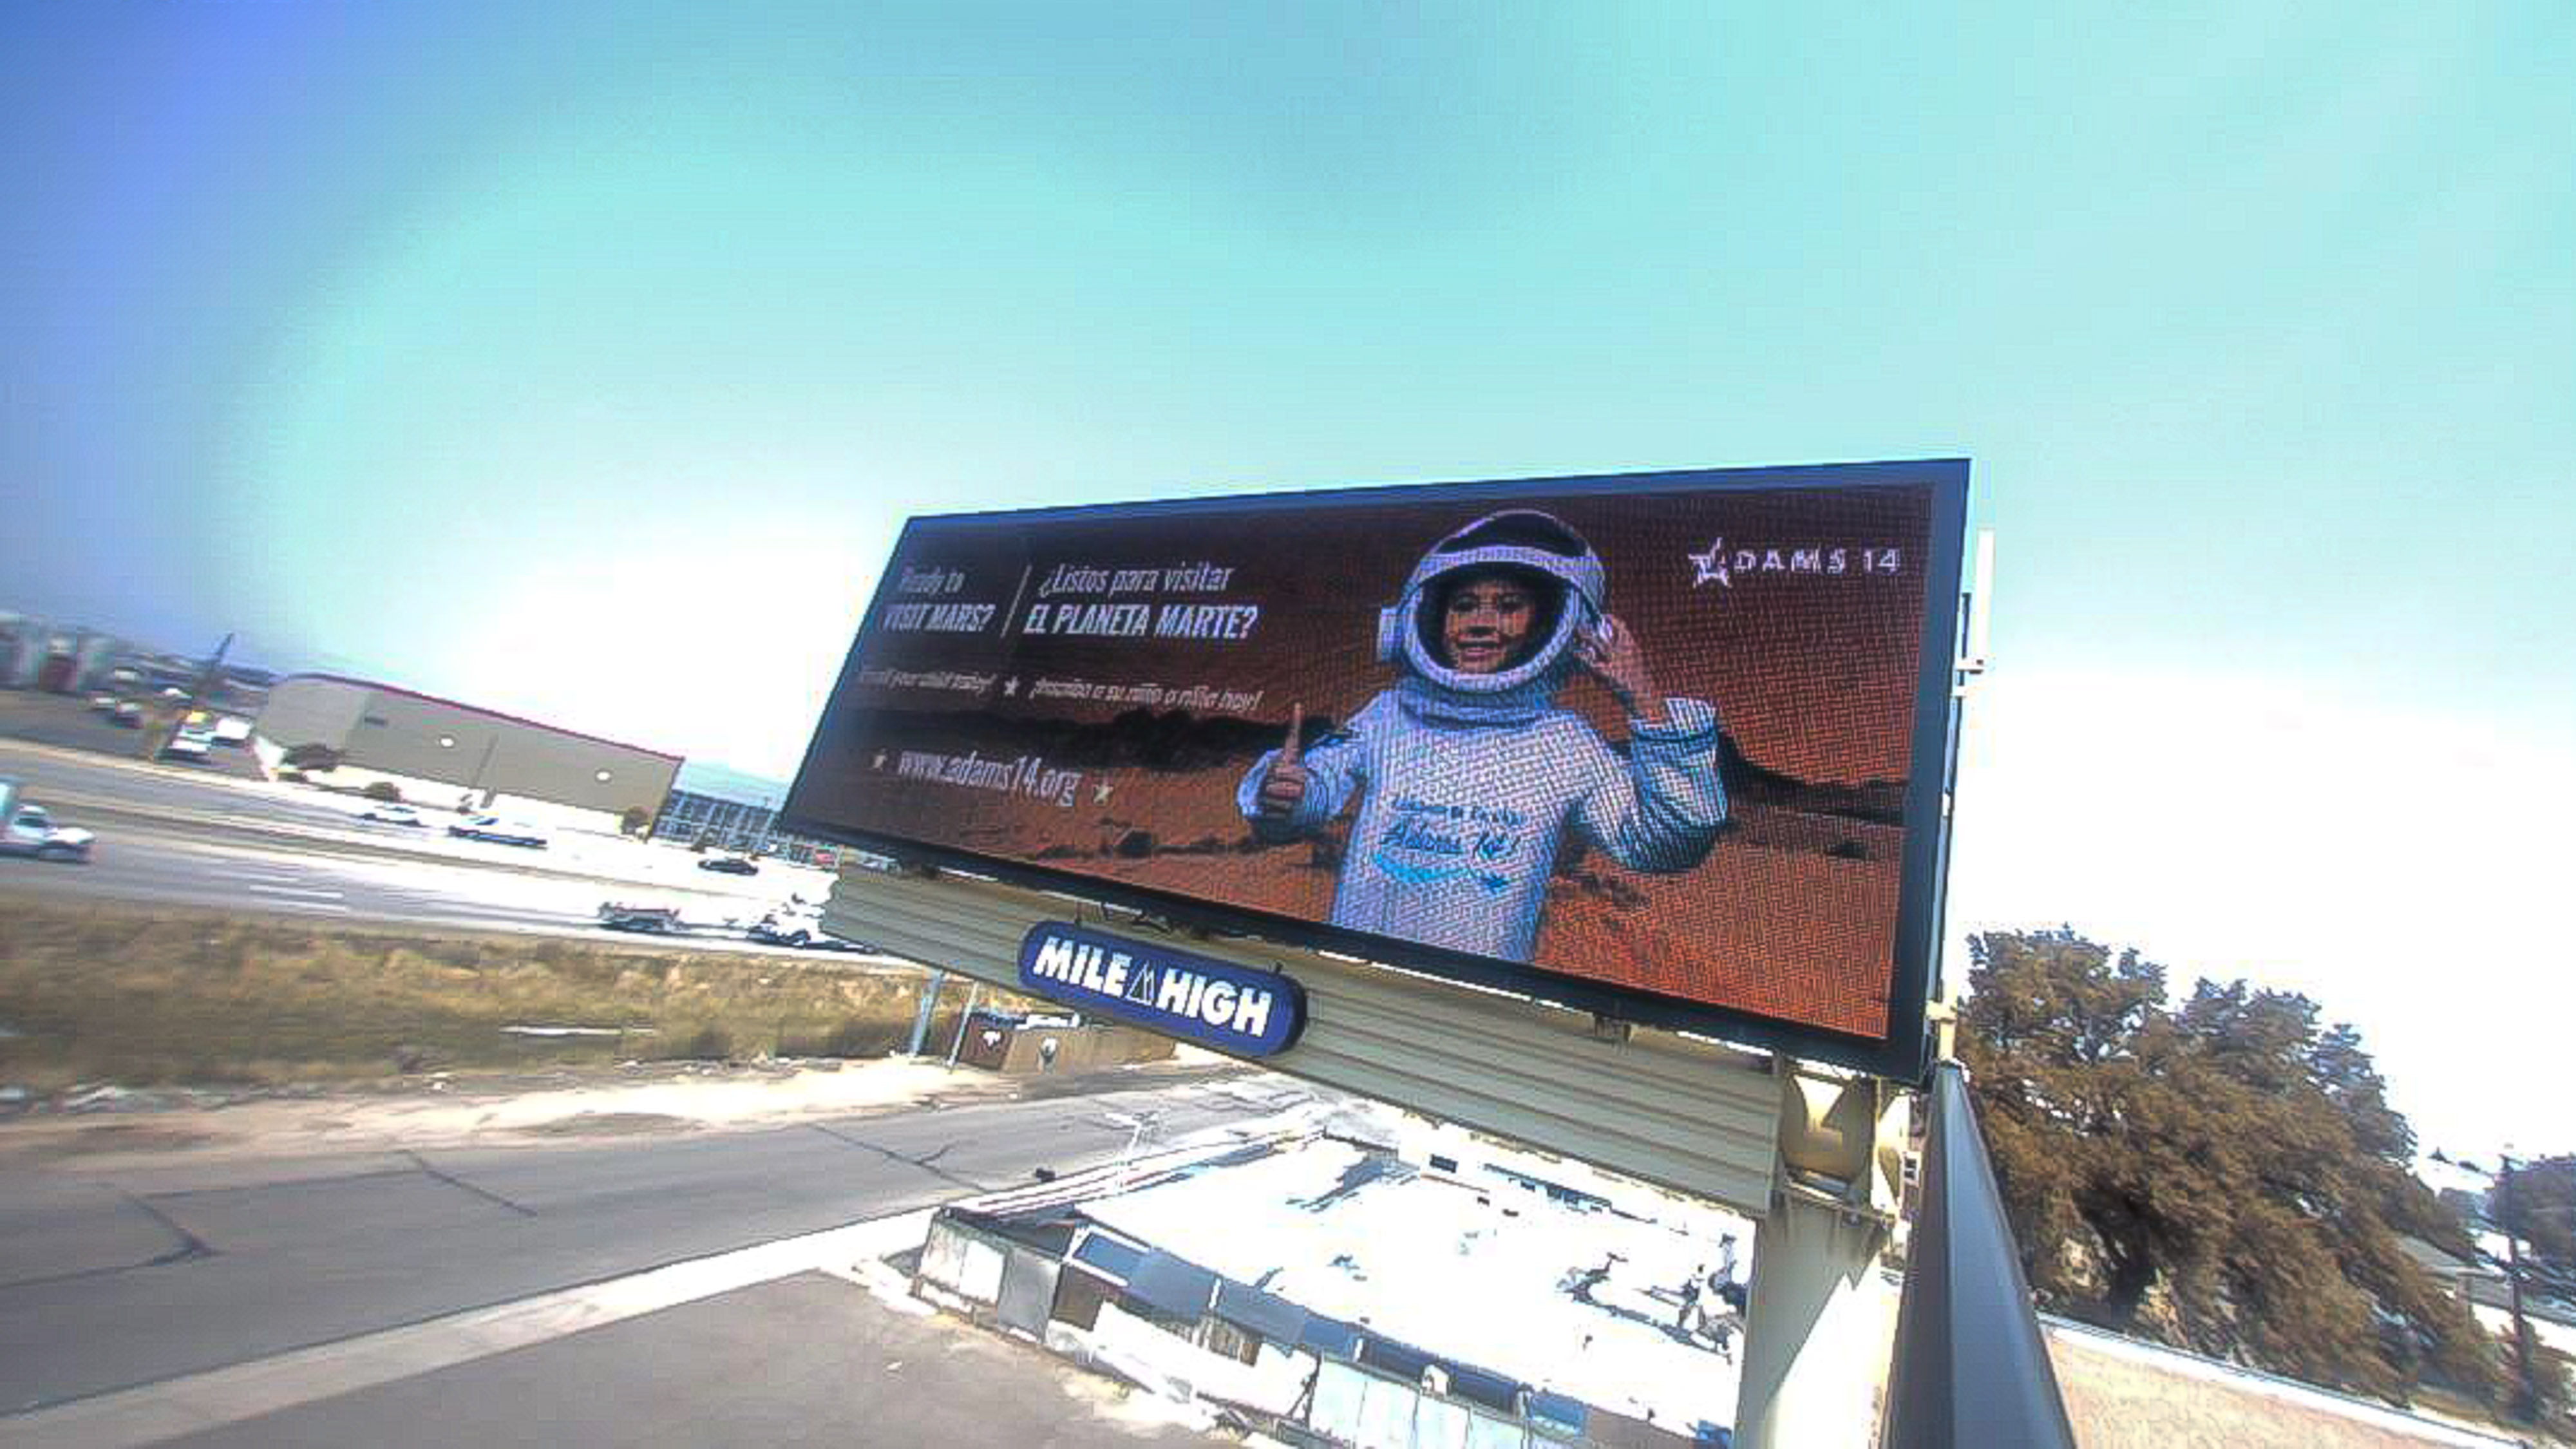 """A billboard for Adams 14 School District shows a child as an astronaut with the text """"Ready to visit Mars?"""" on the left-hand side in English and Spanish."""